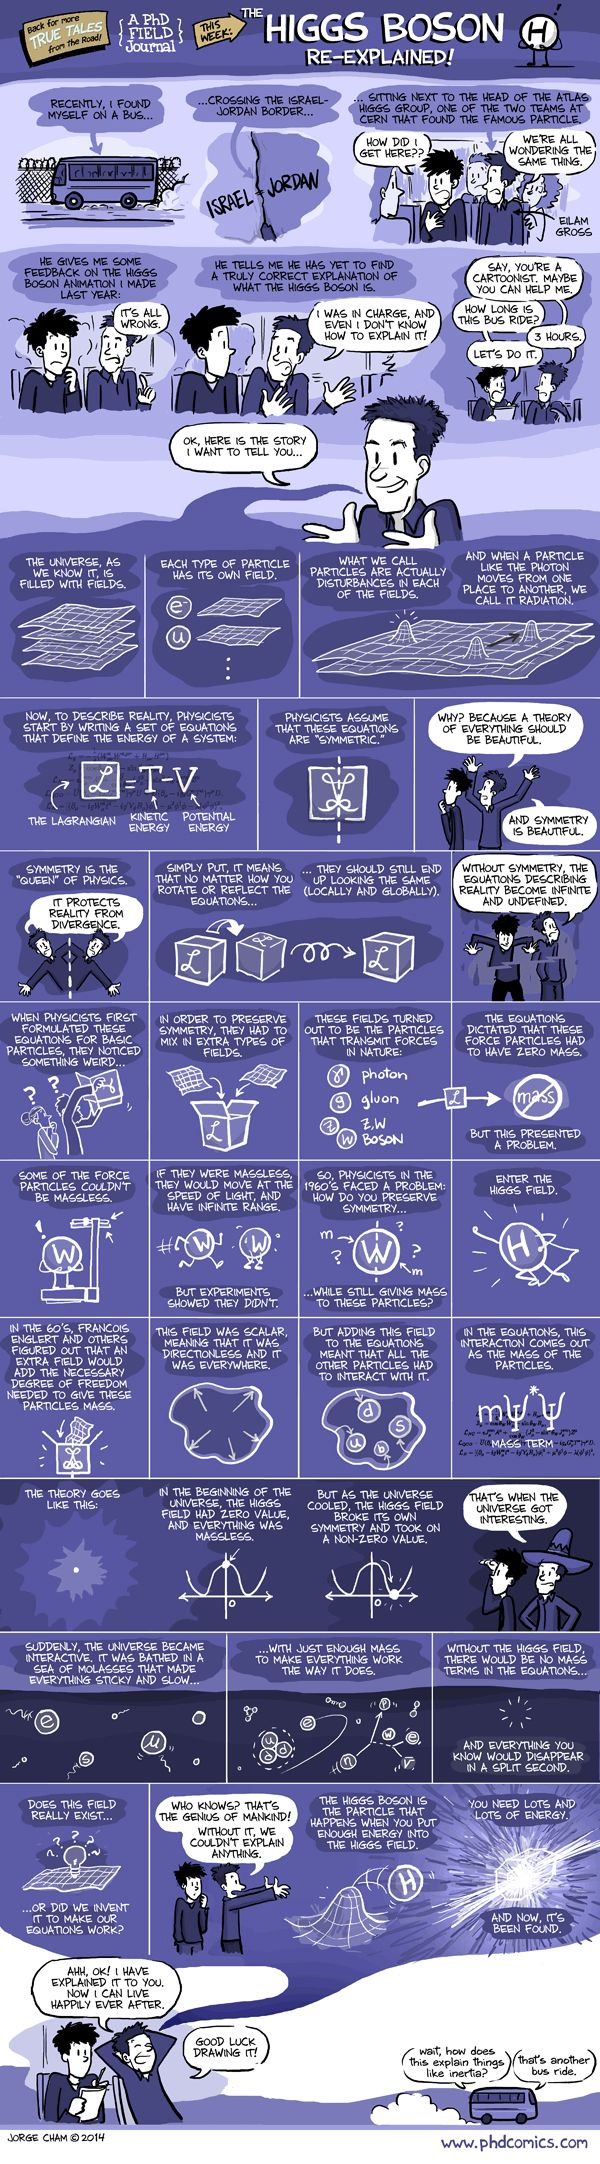 The Higgs Boson Re-explained!                                                                                                                                                                                 More